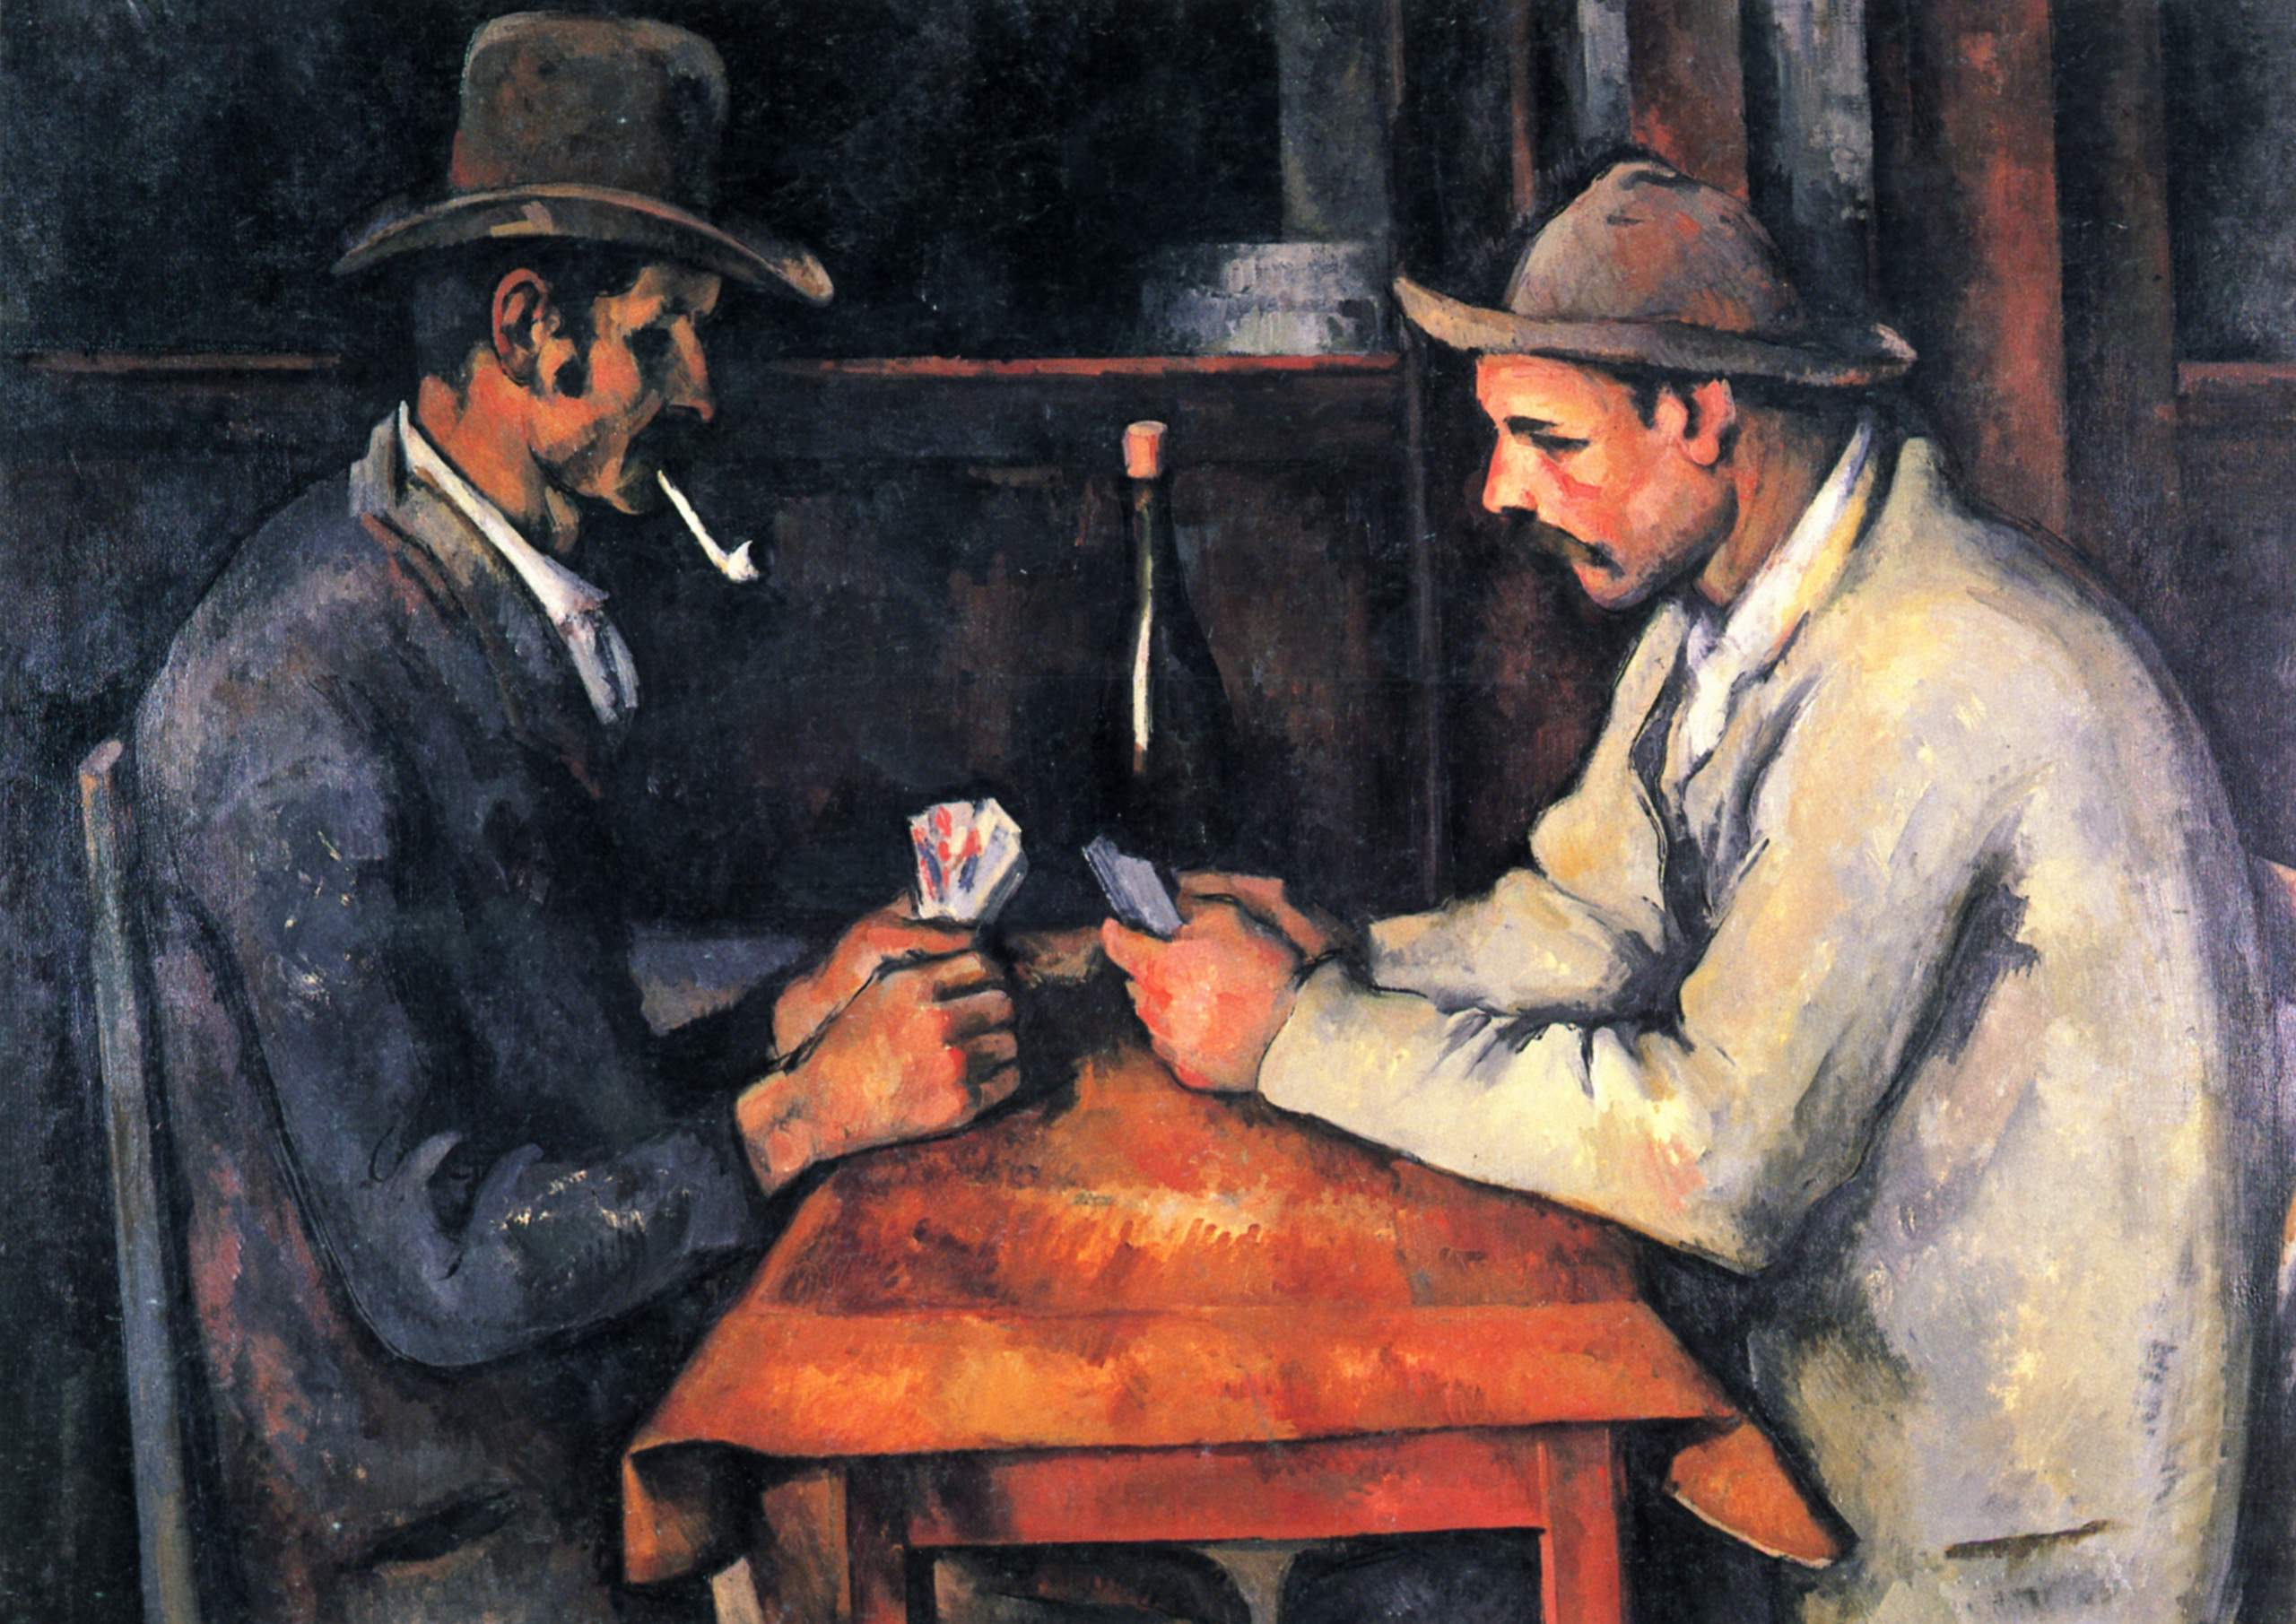 the painting - Zwei Kartenspieler(translated to the card player) by Paul Cézanne